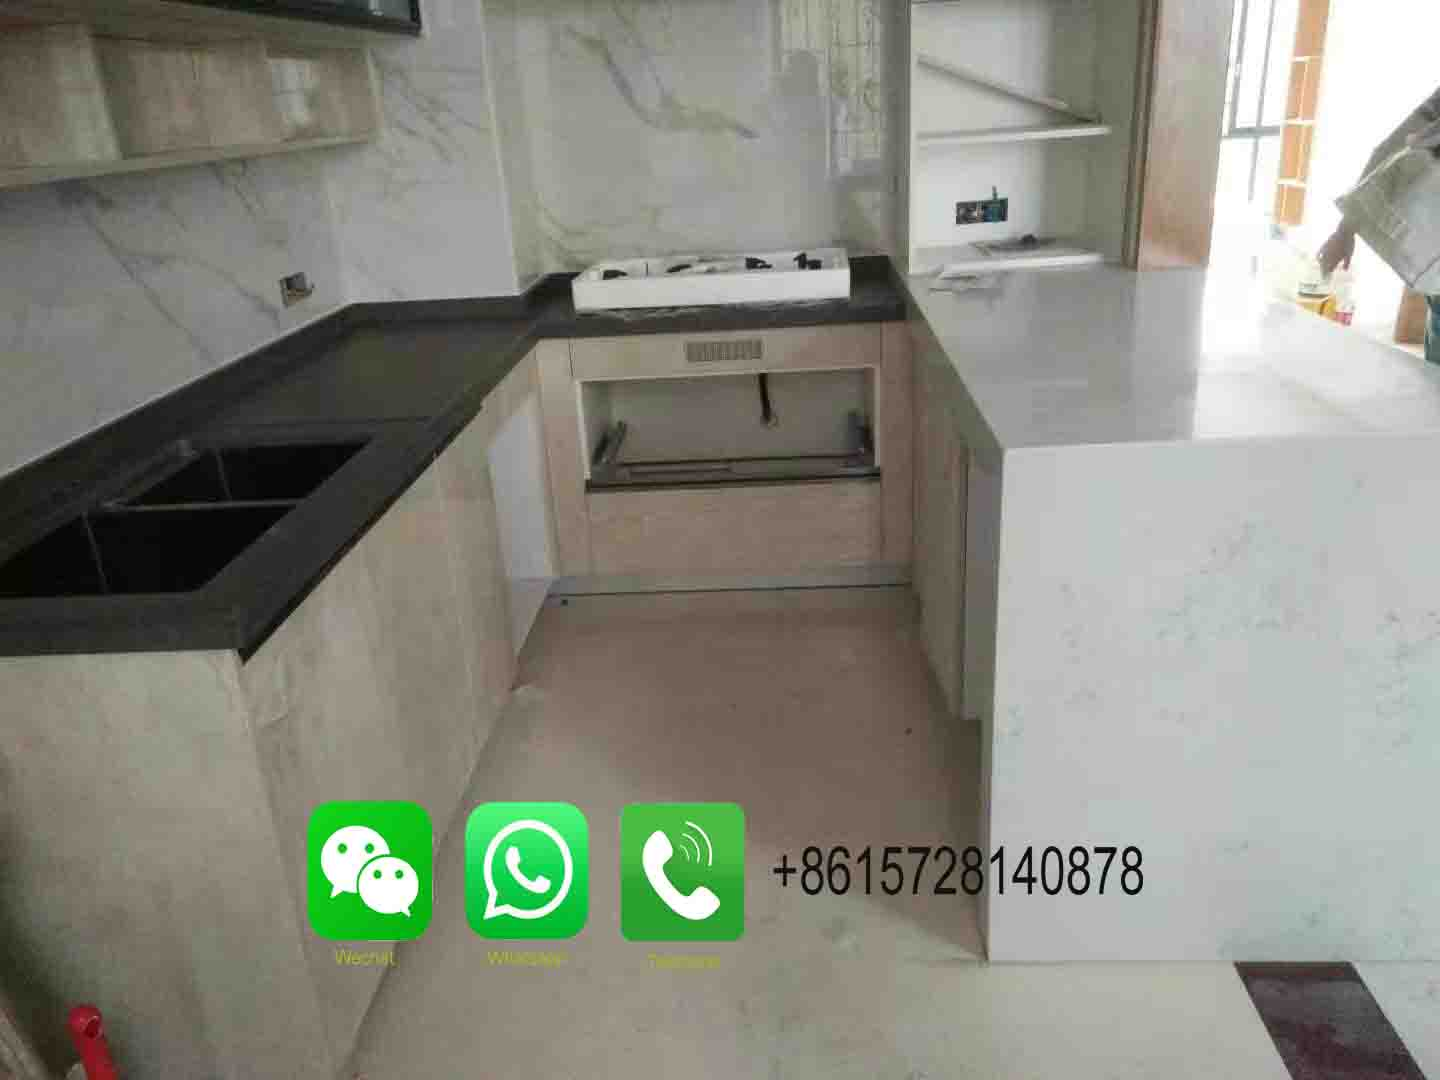 wholesale solid surface countertop material Italian white carrara marble slab vanity counter top table top for home